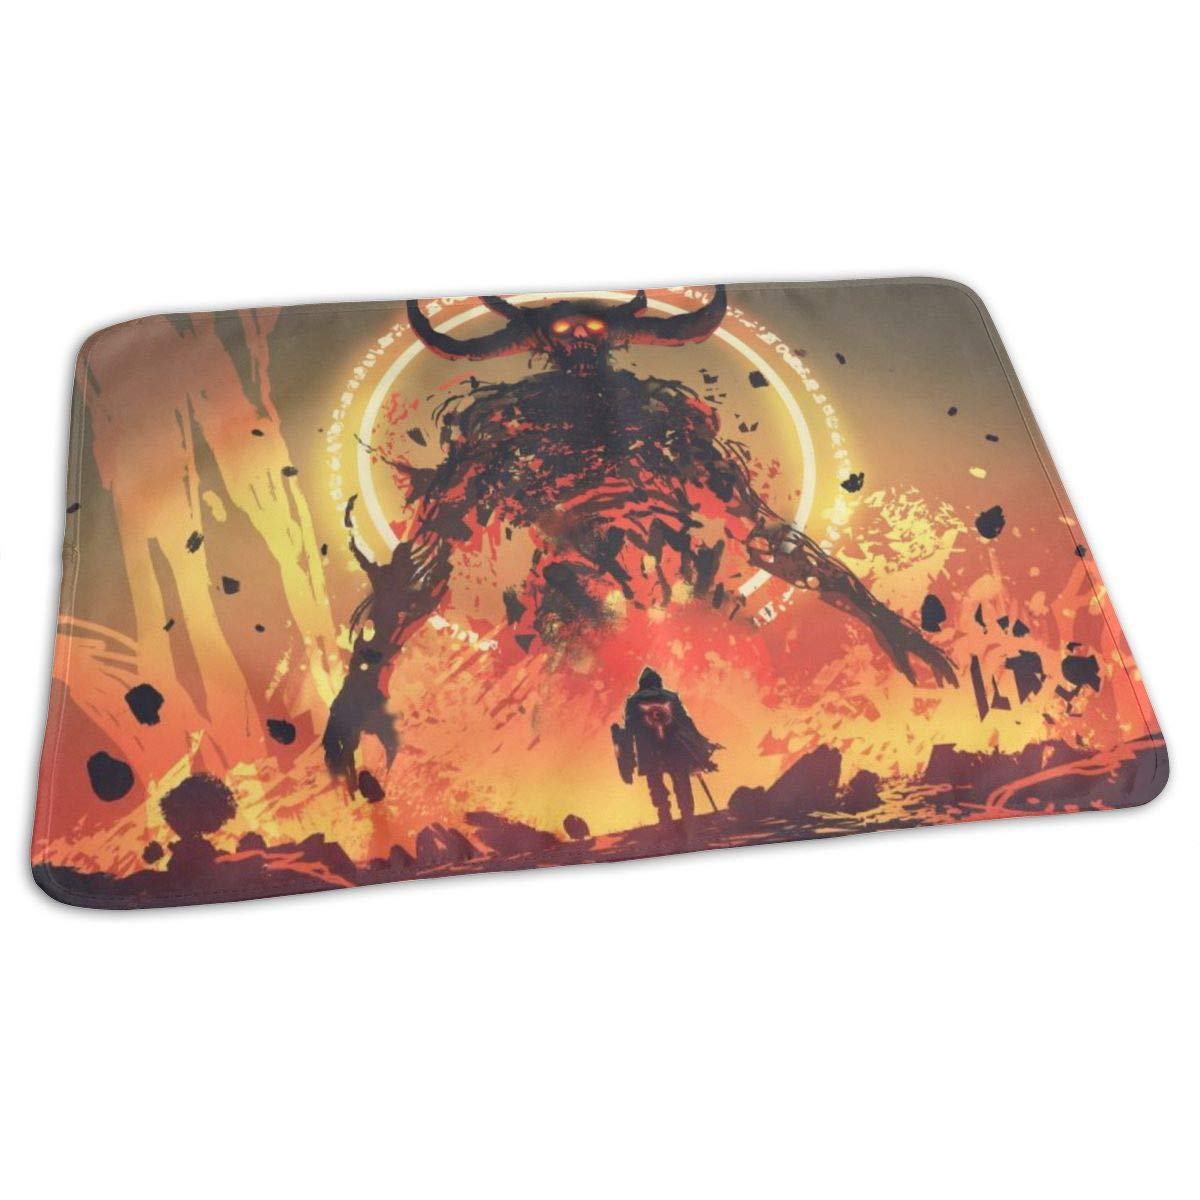 Osvbs Lovely Baby Reusable Waterproof Portable Knight with A Sword Facing The Lava Demon in Hell Changing Pad Home Travel 27.5''x19.7'' by Osvbs